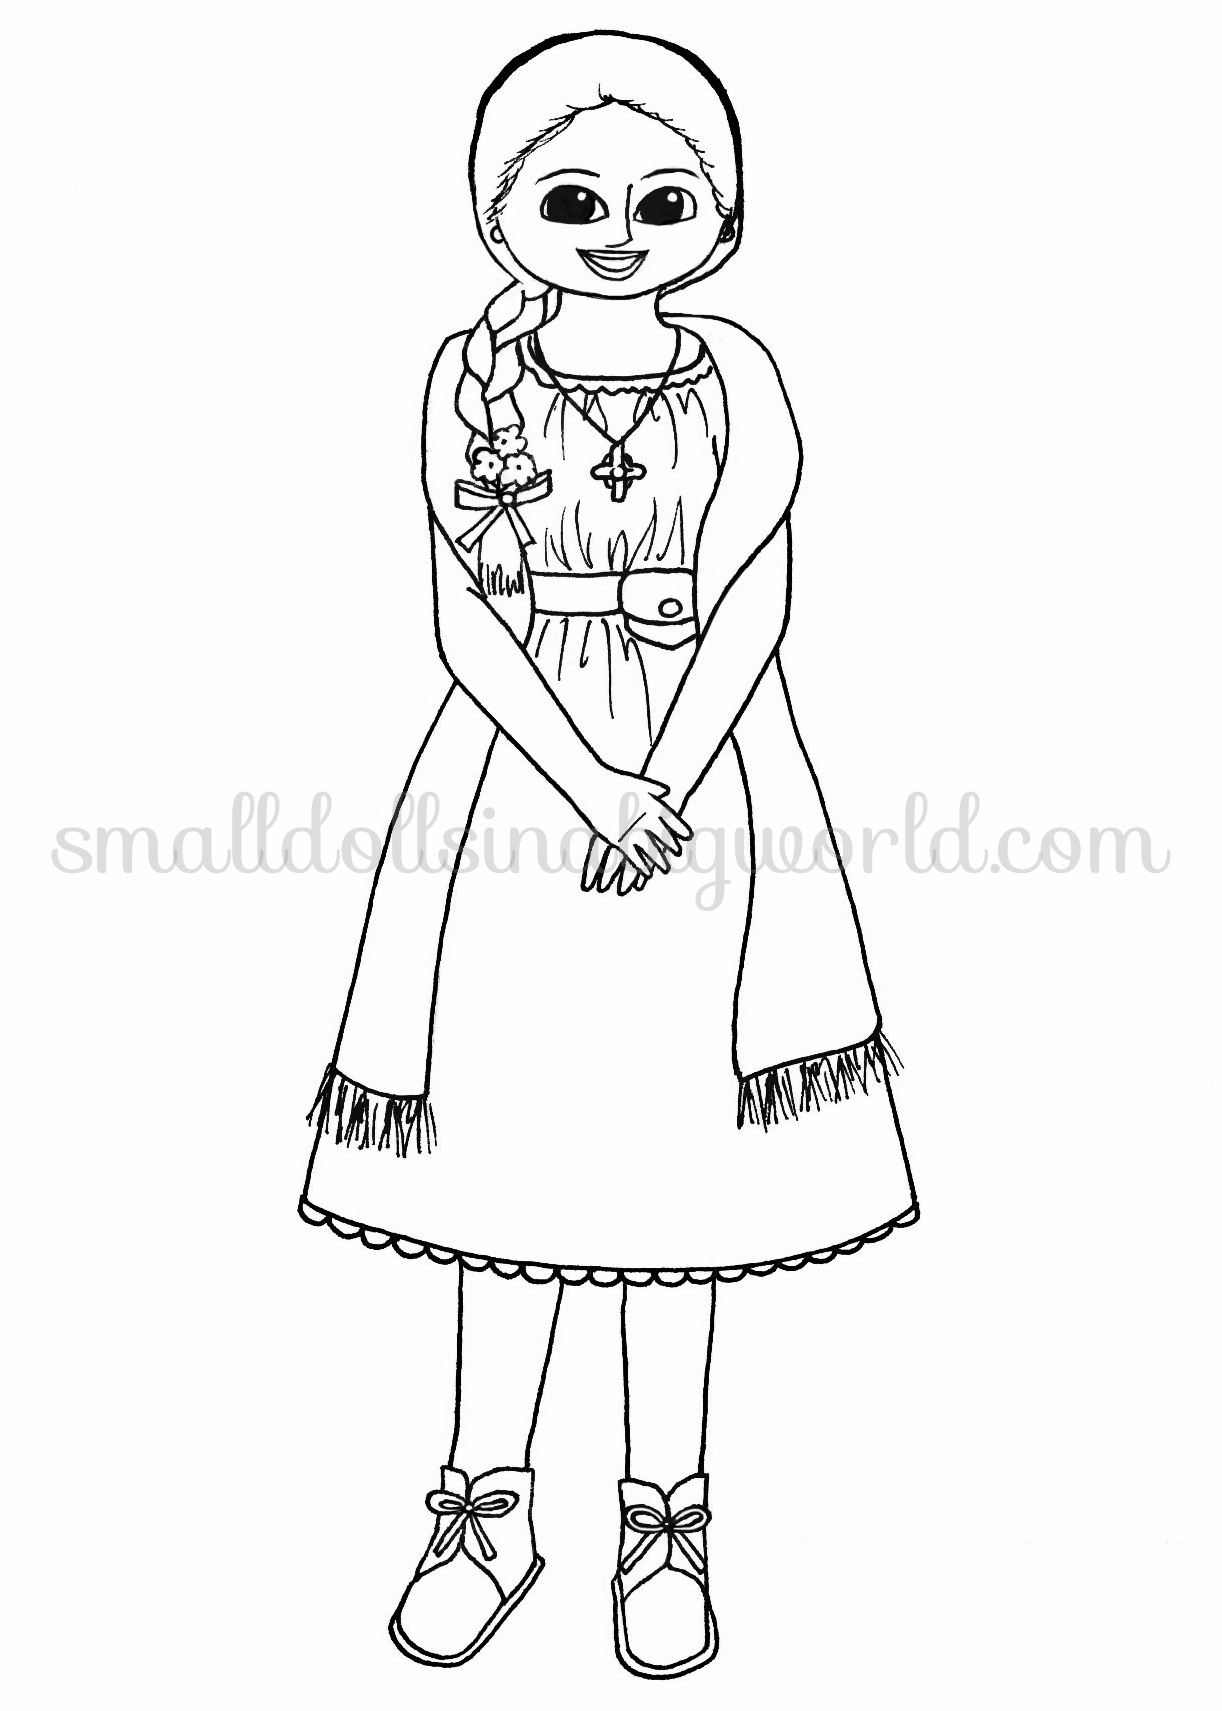 100 ideas American Doll Coloring Pages on wwwgerardduchemanncom